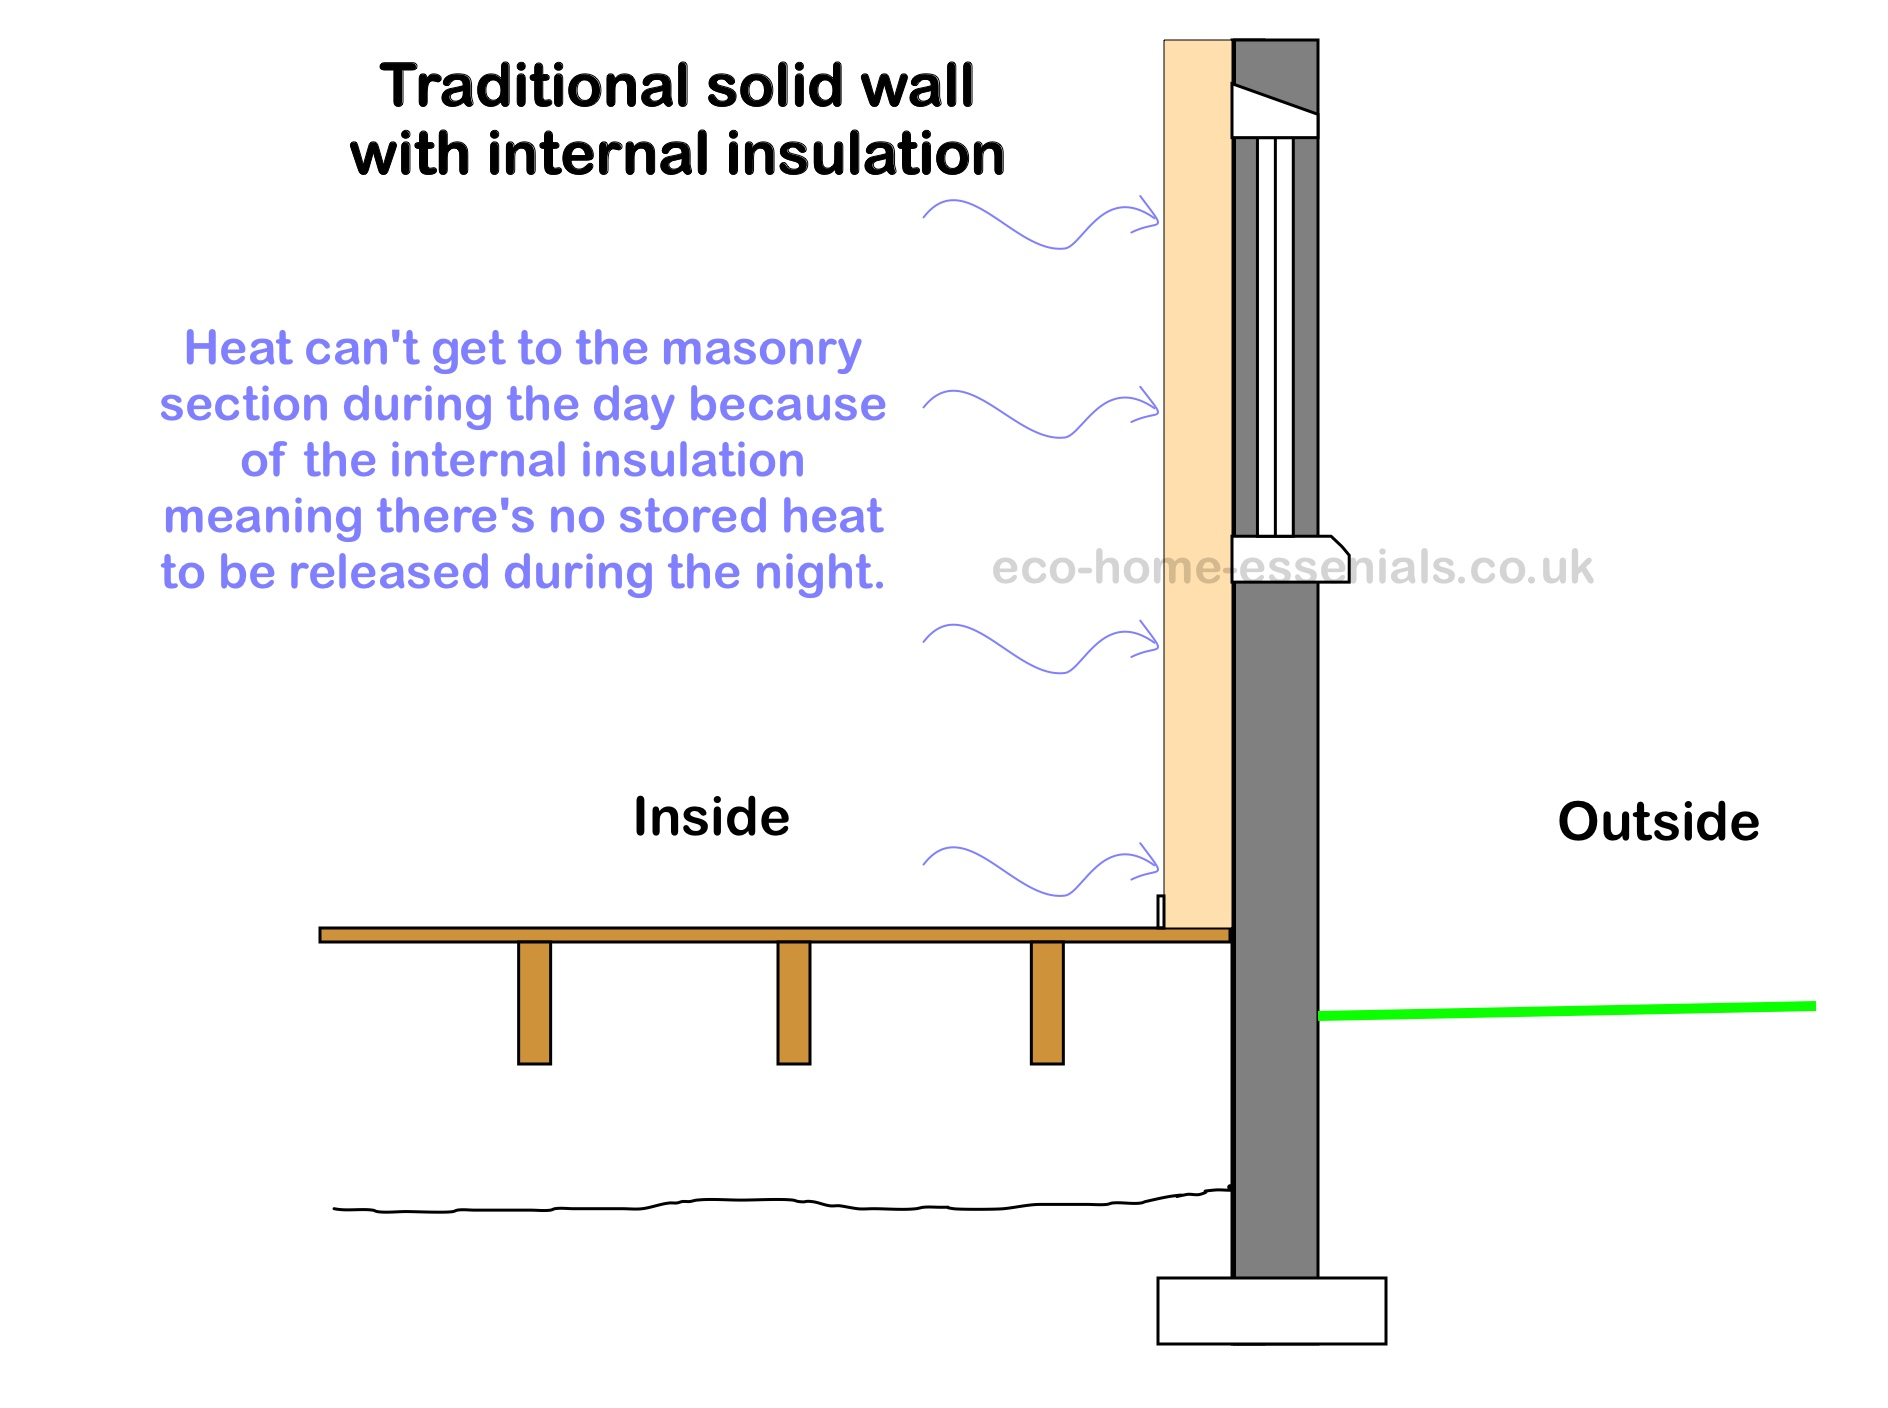 Marvelous Internal Insulation   No Thermal Mass